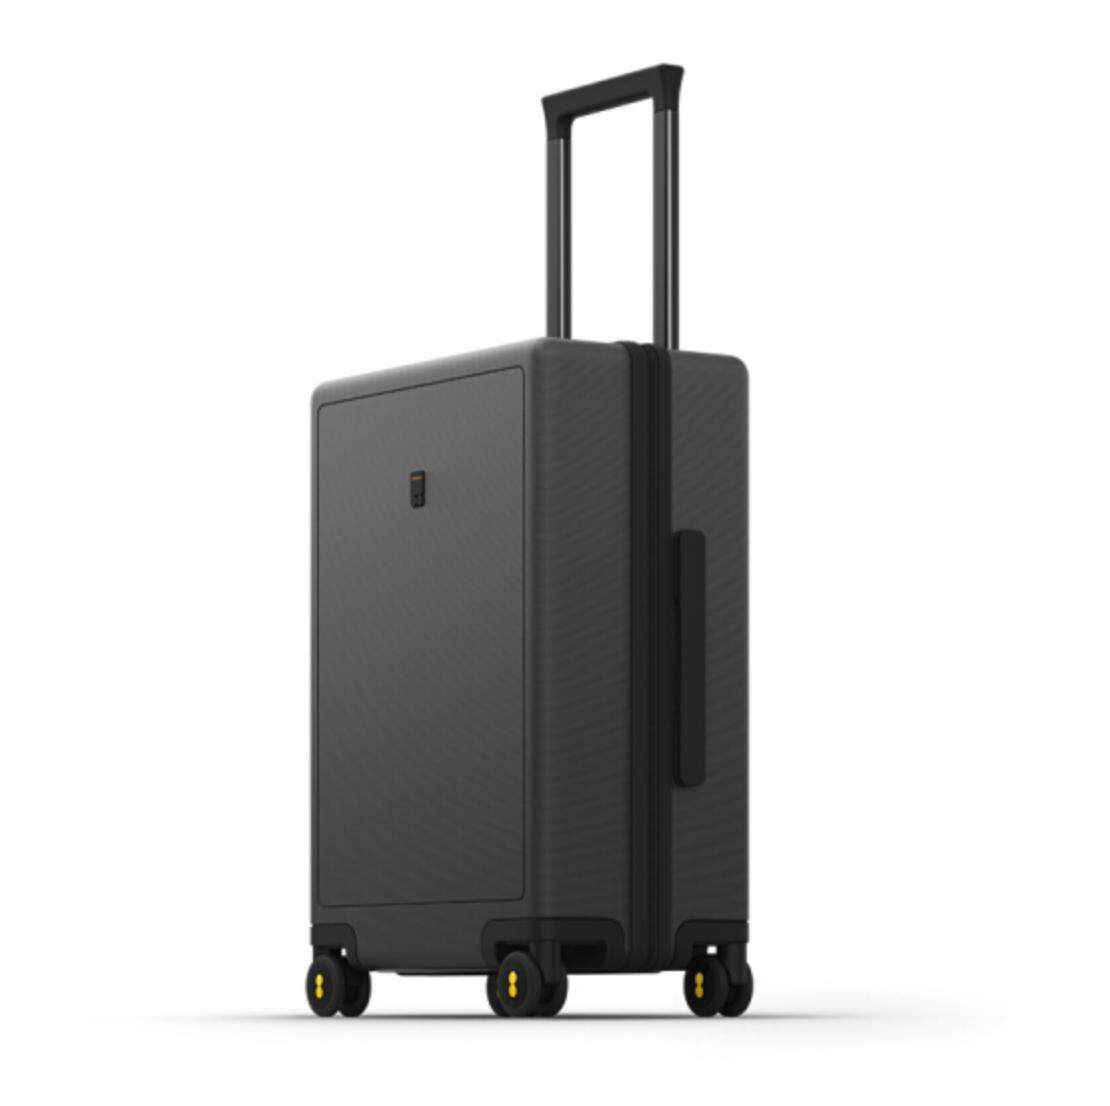 64a8f616ce LEVEL8 Business Suitcase Travel Luggage (Standard Edition)  Aluminium-Magnesium Alloy Cabin Size 21